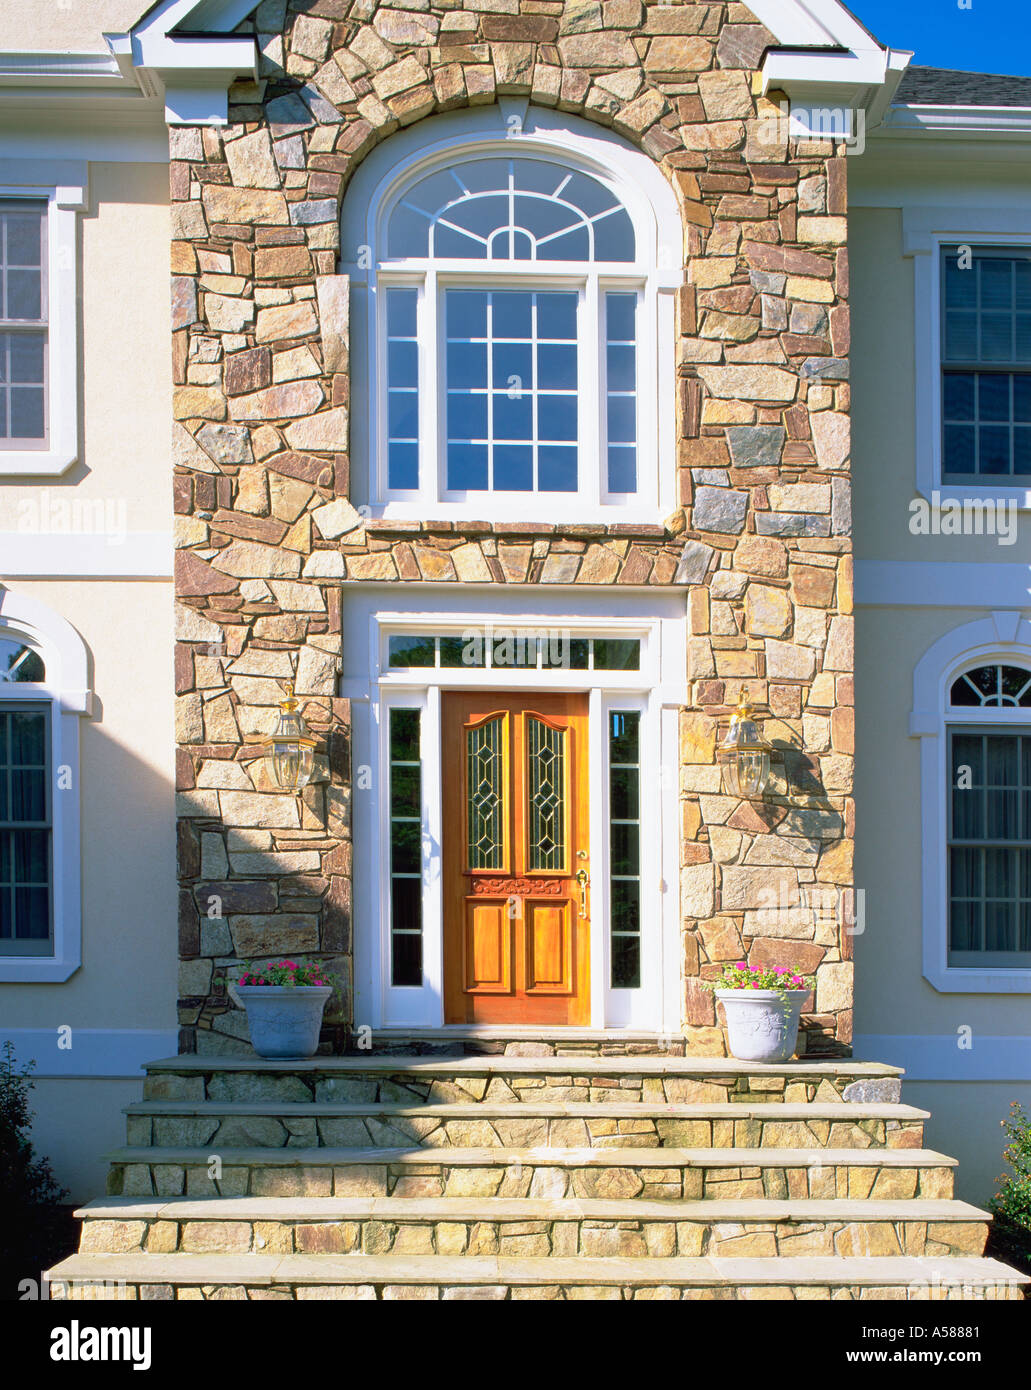 Front Entrance Of Elegant House With Stone Facade And